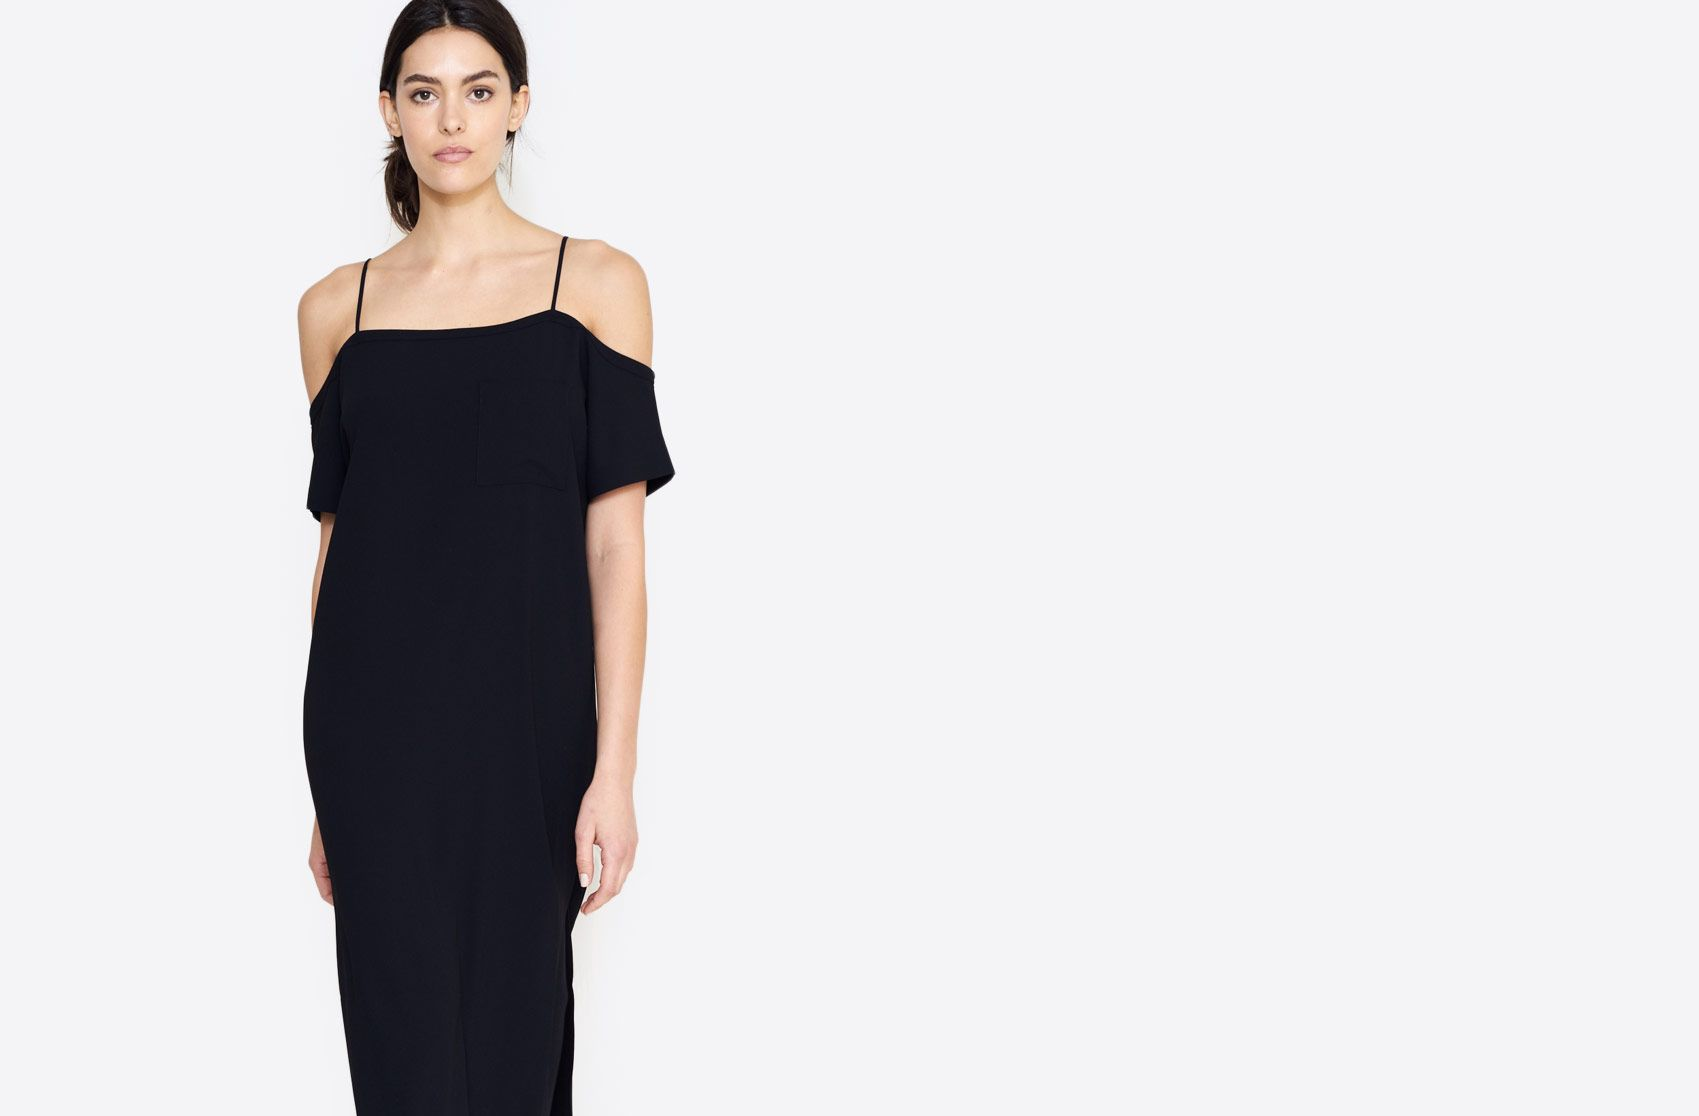 Alexander Wang Crepe Off-The-Shoulder Dress | Bird